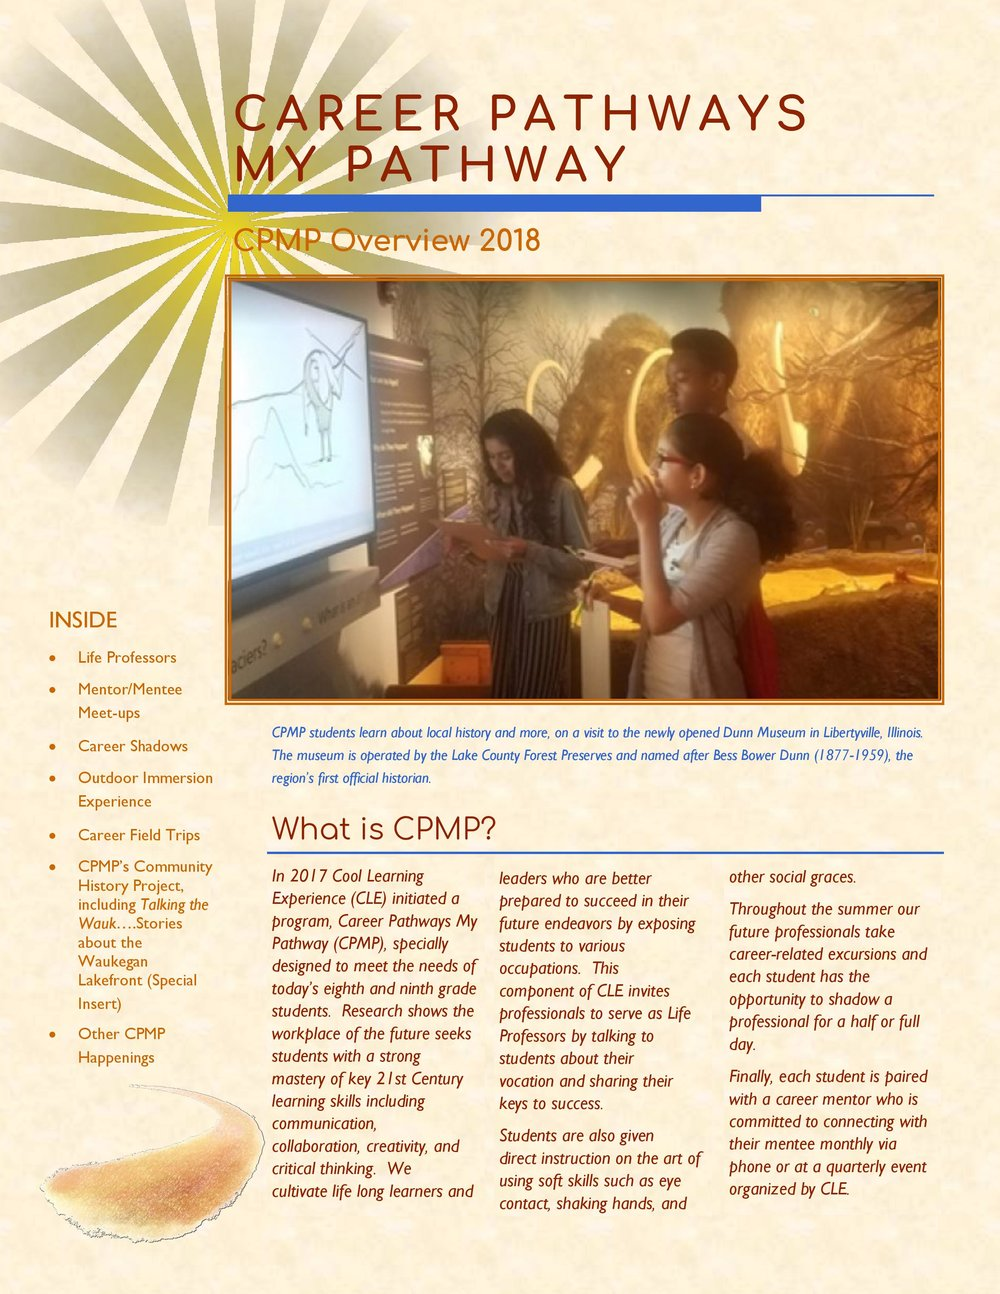 CPMP 2018 Overview FINAL Revised January 8 2019-page-001.jpg